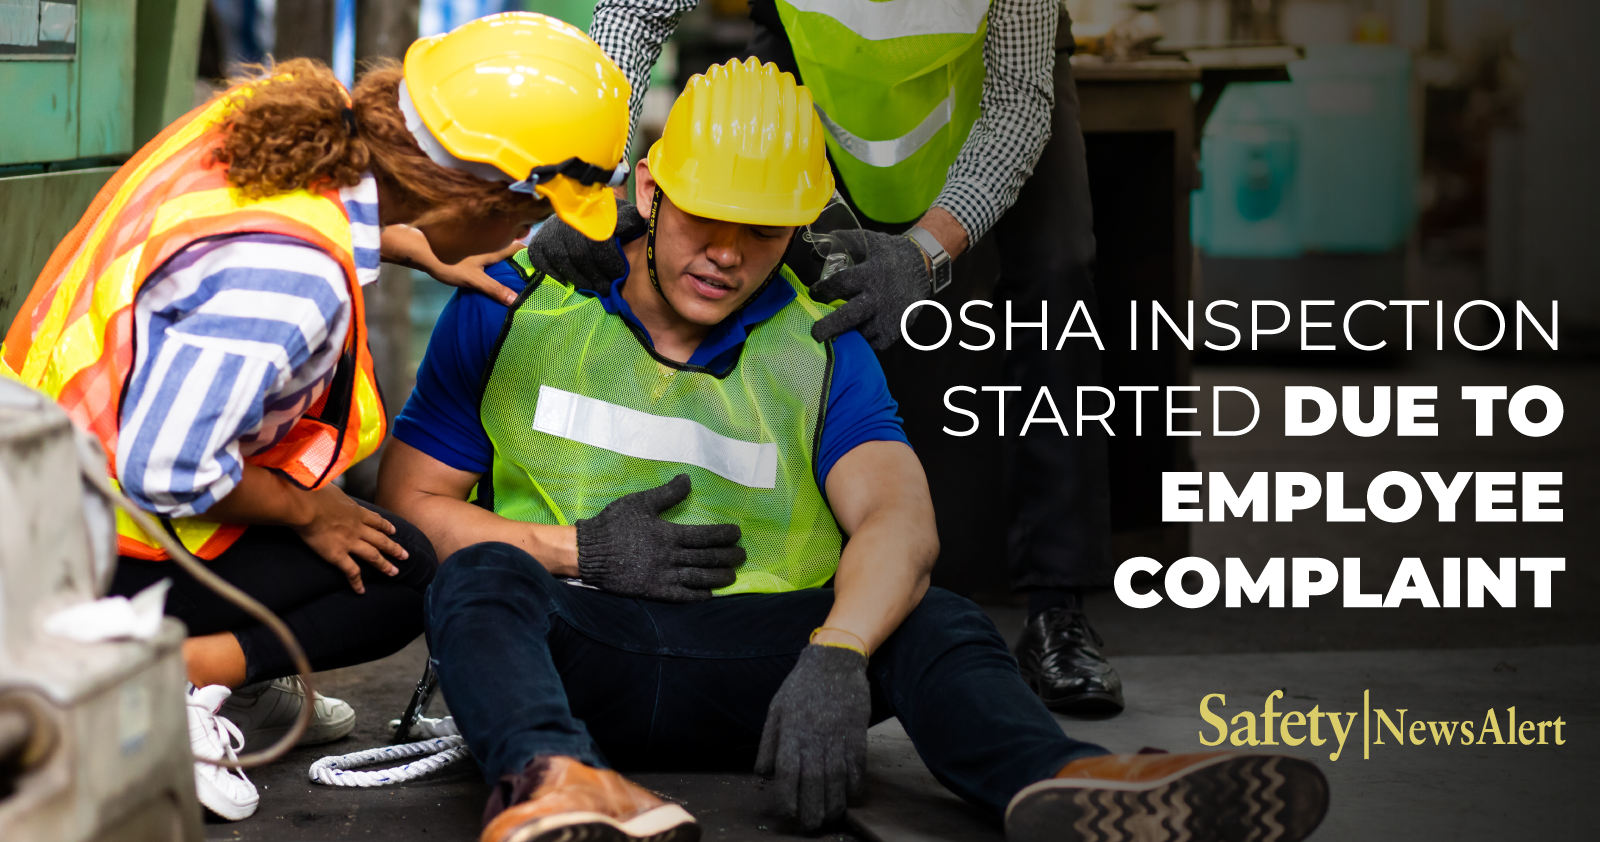 OSHA inspection started due to employee complaint